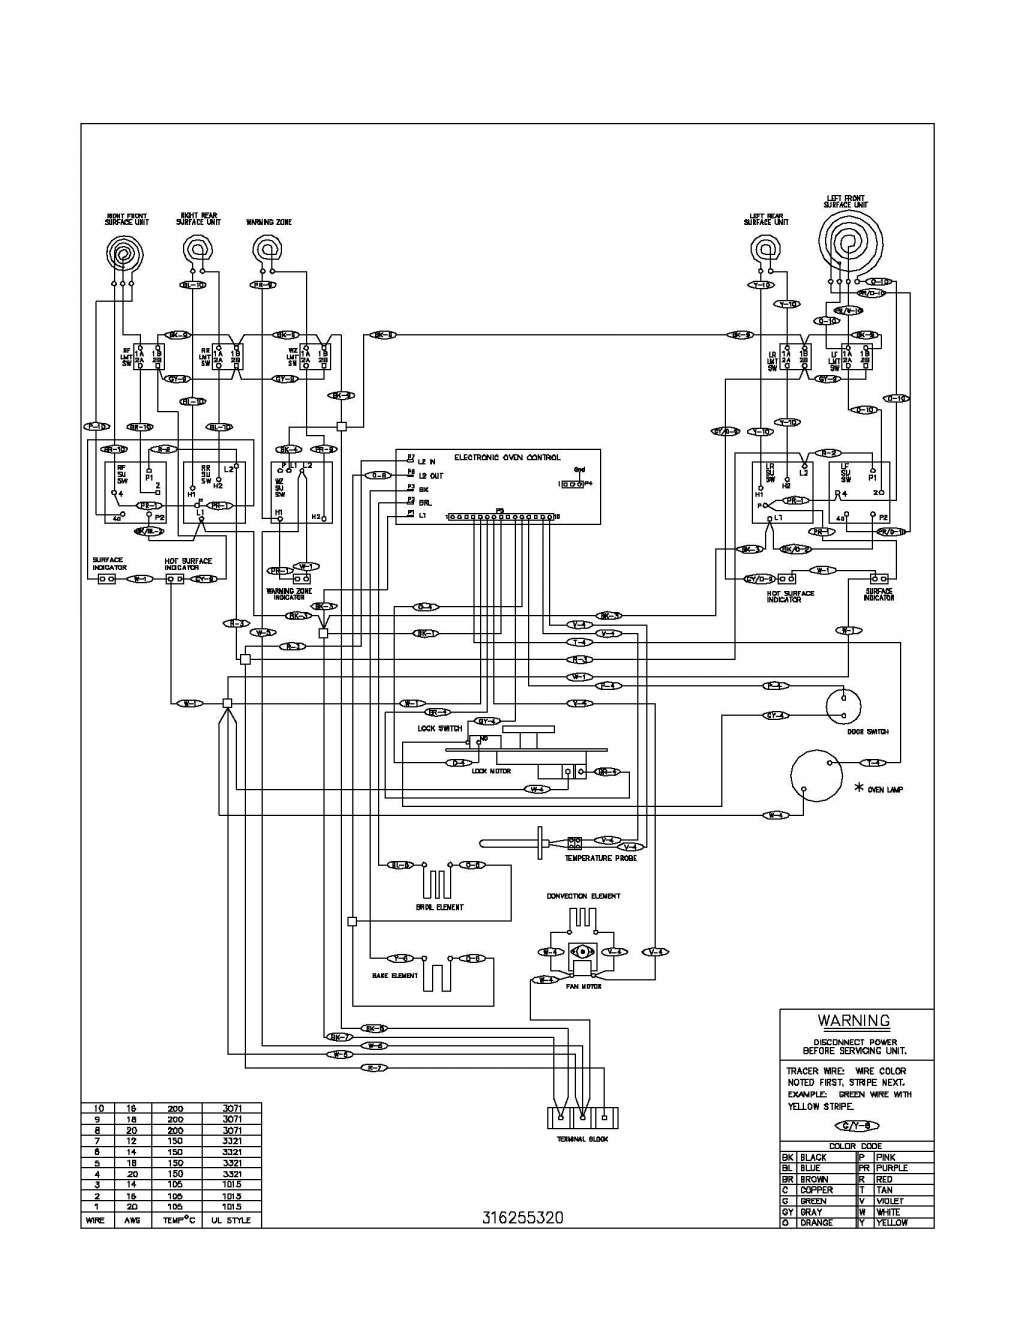 15+ Ge Electric Oven Wiring Diagram | Electric stove, Electrical diagram,  Electric ovenPinterest